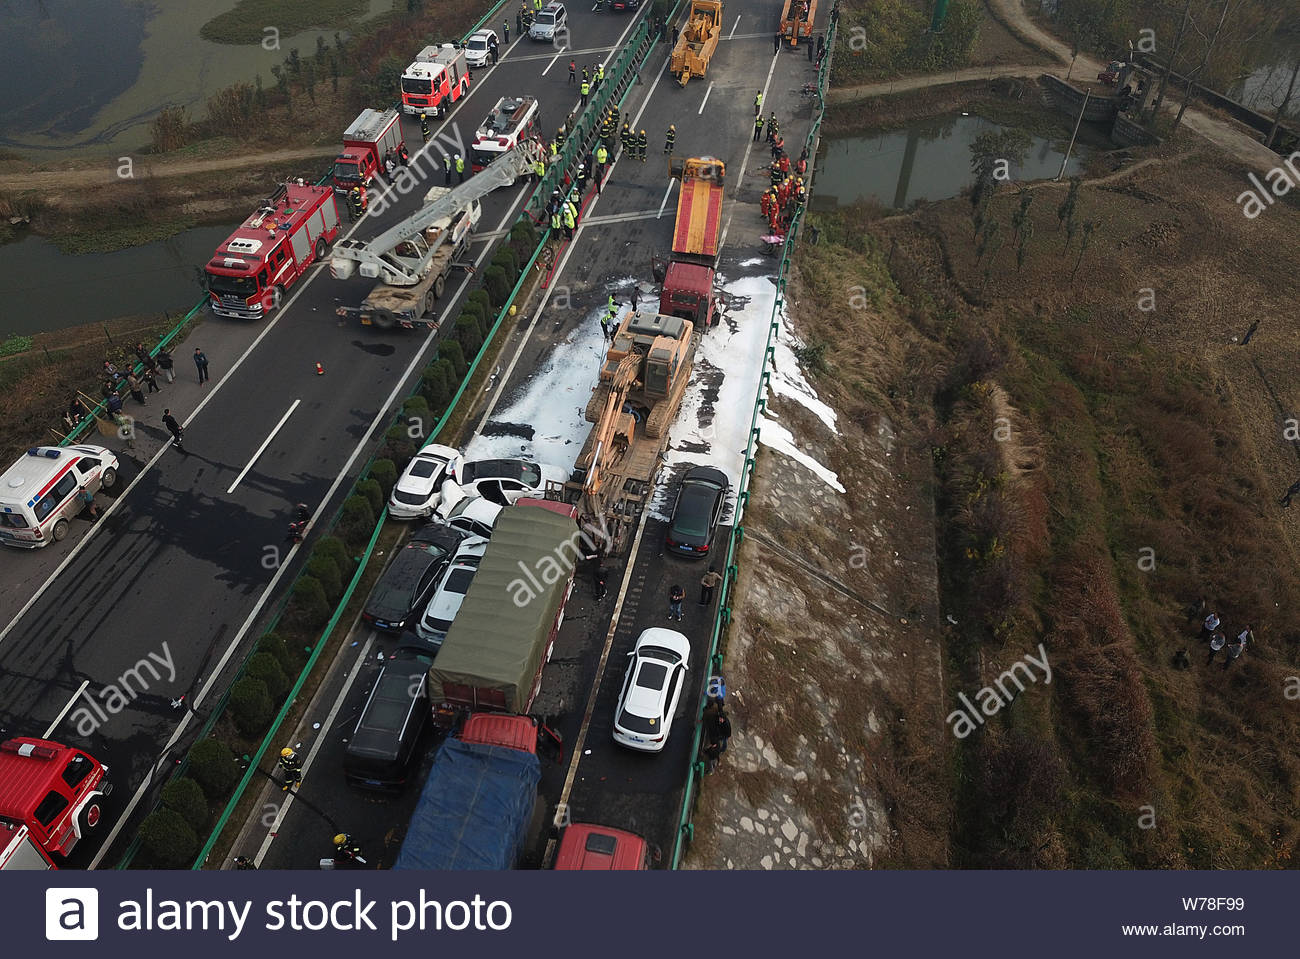 Aerial view of the accident site where a pile-up involving